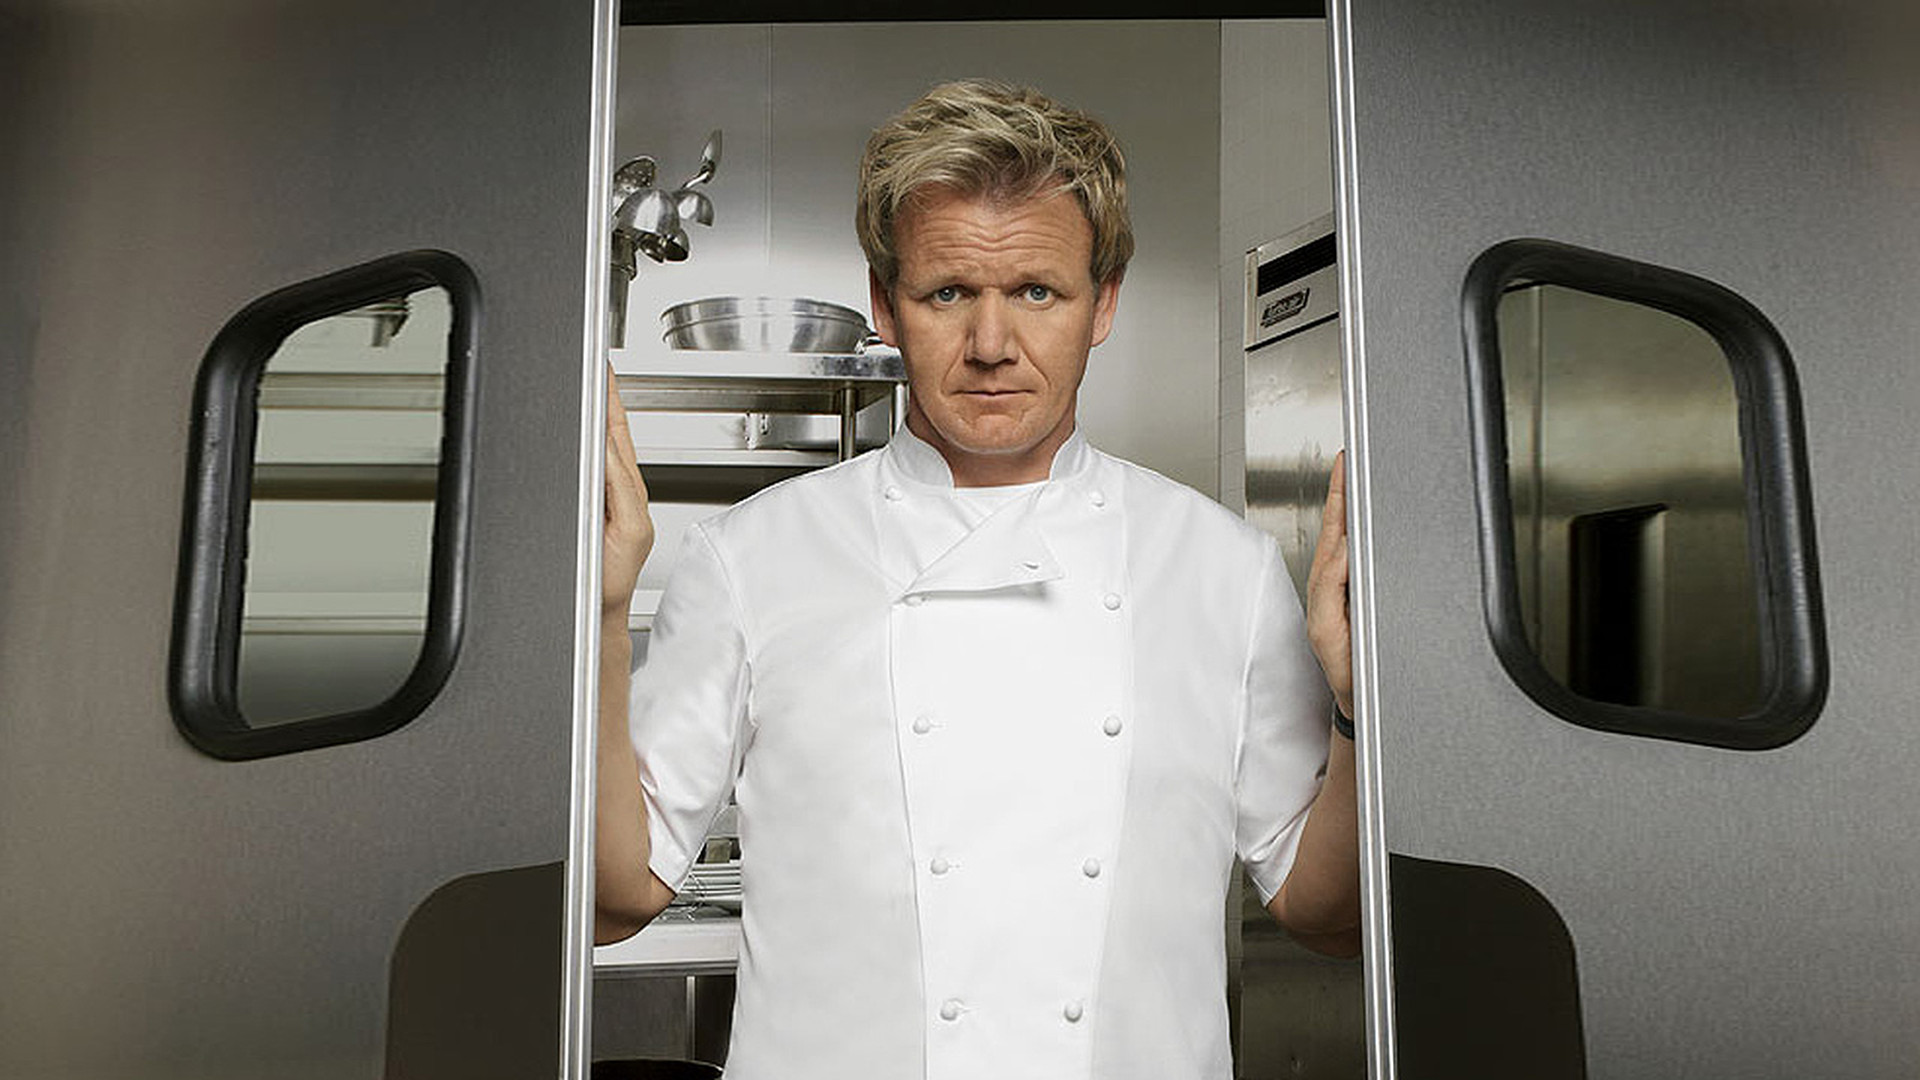 oceana summary - kitchen nightmares season 4, episode 14 episode guide